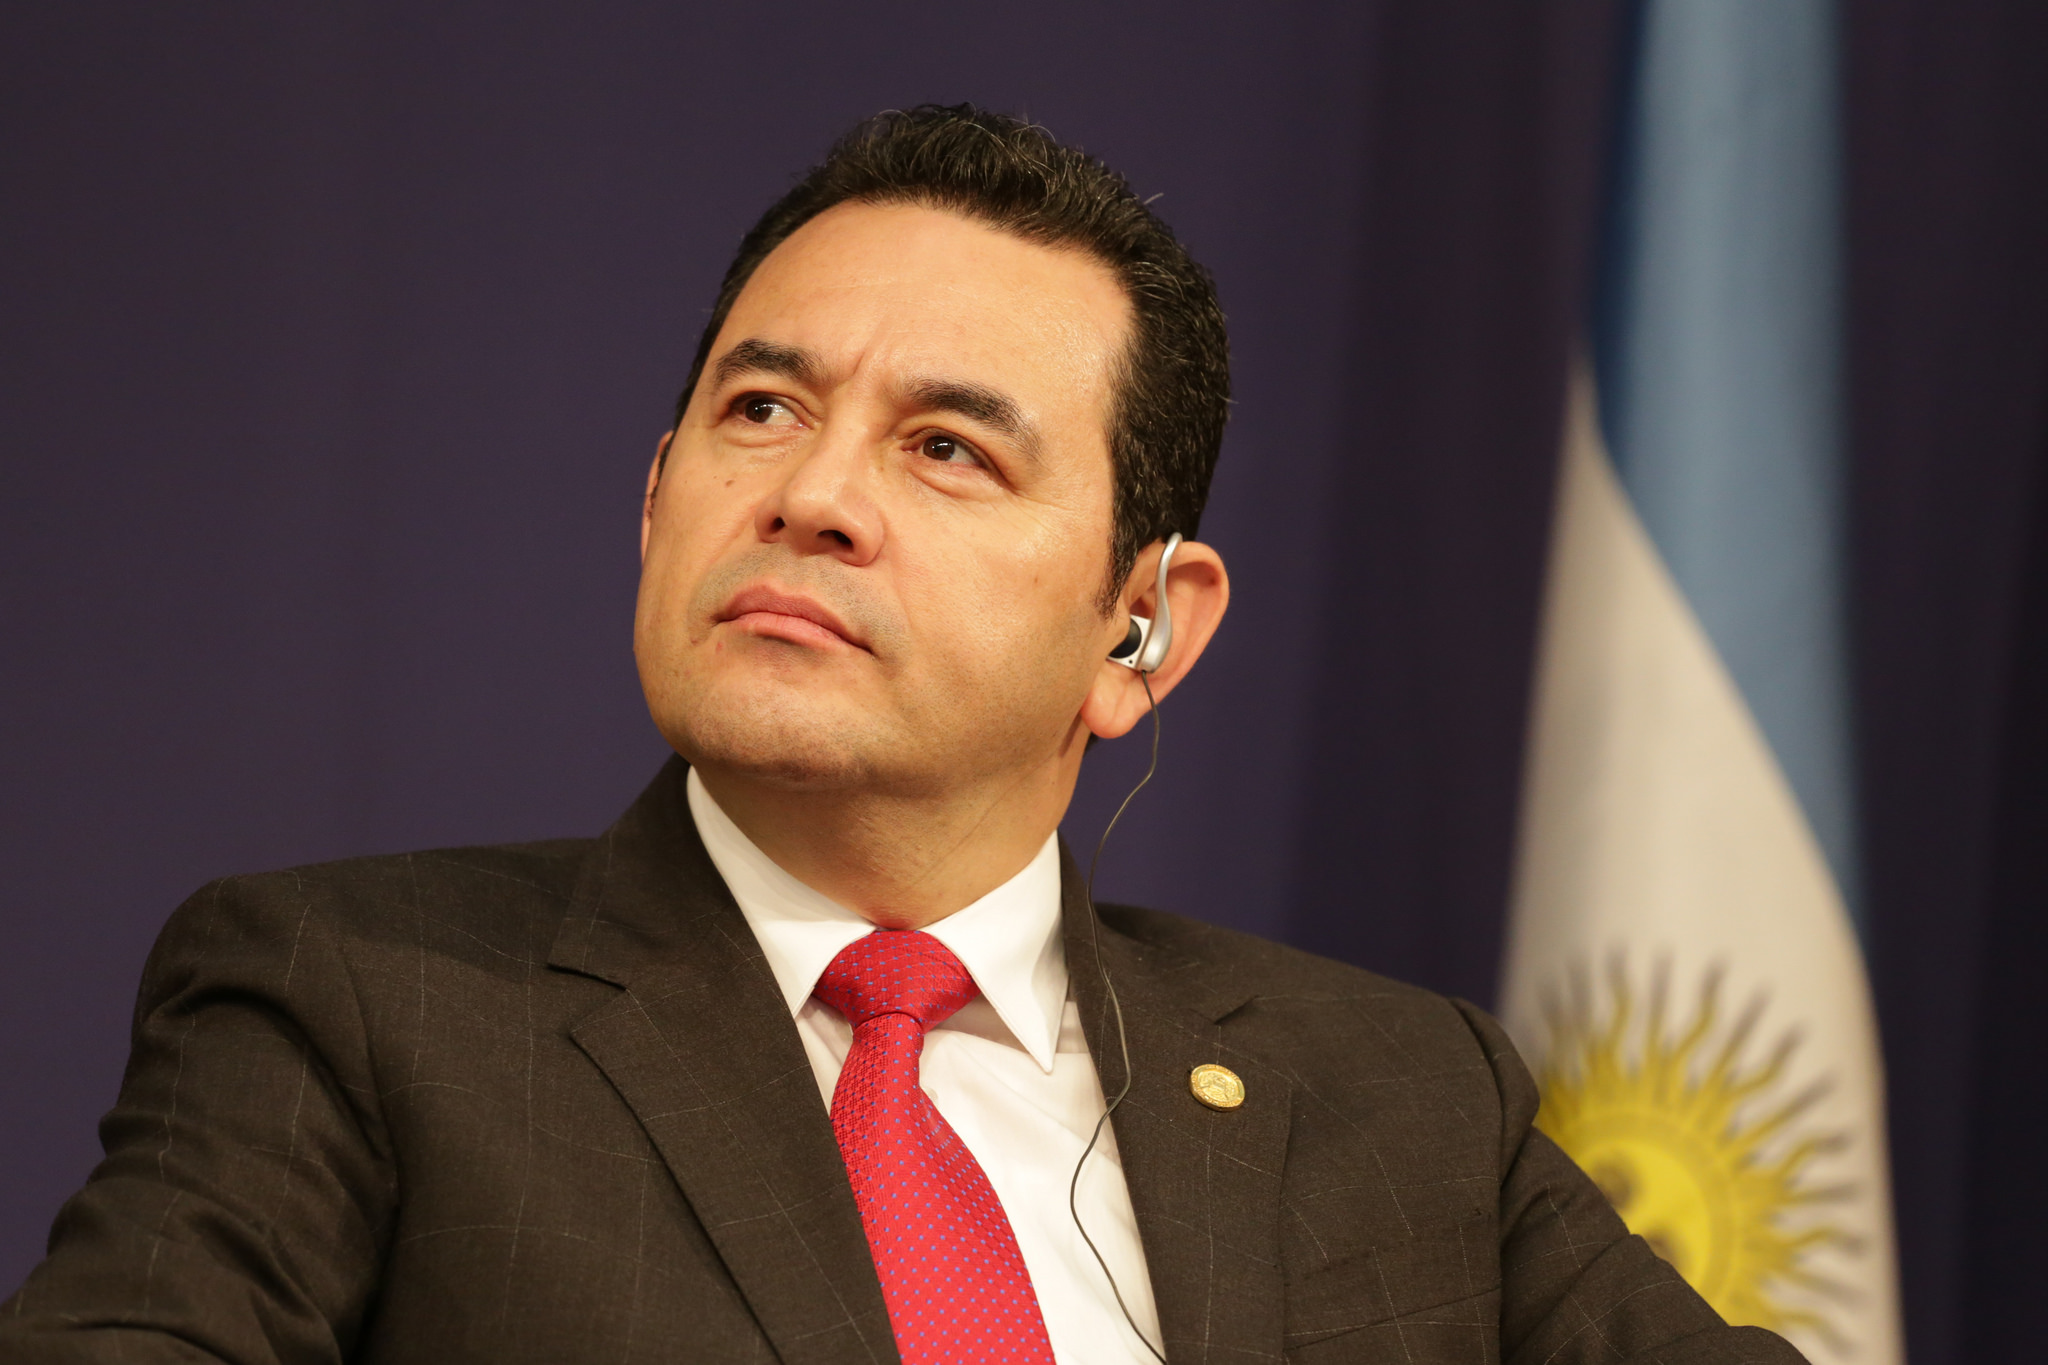 President Jimmy Morales of Guatemala looks upward